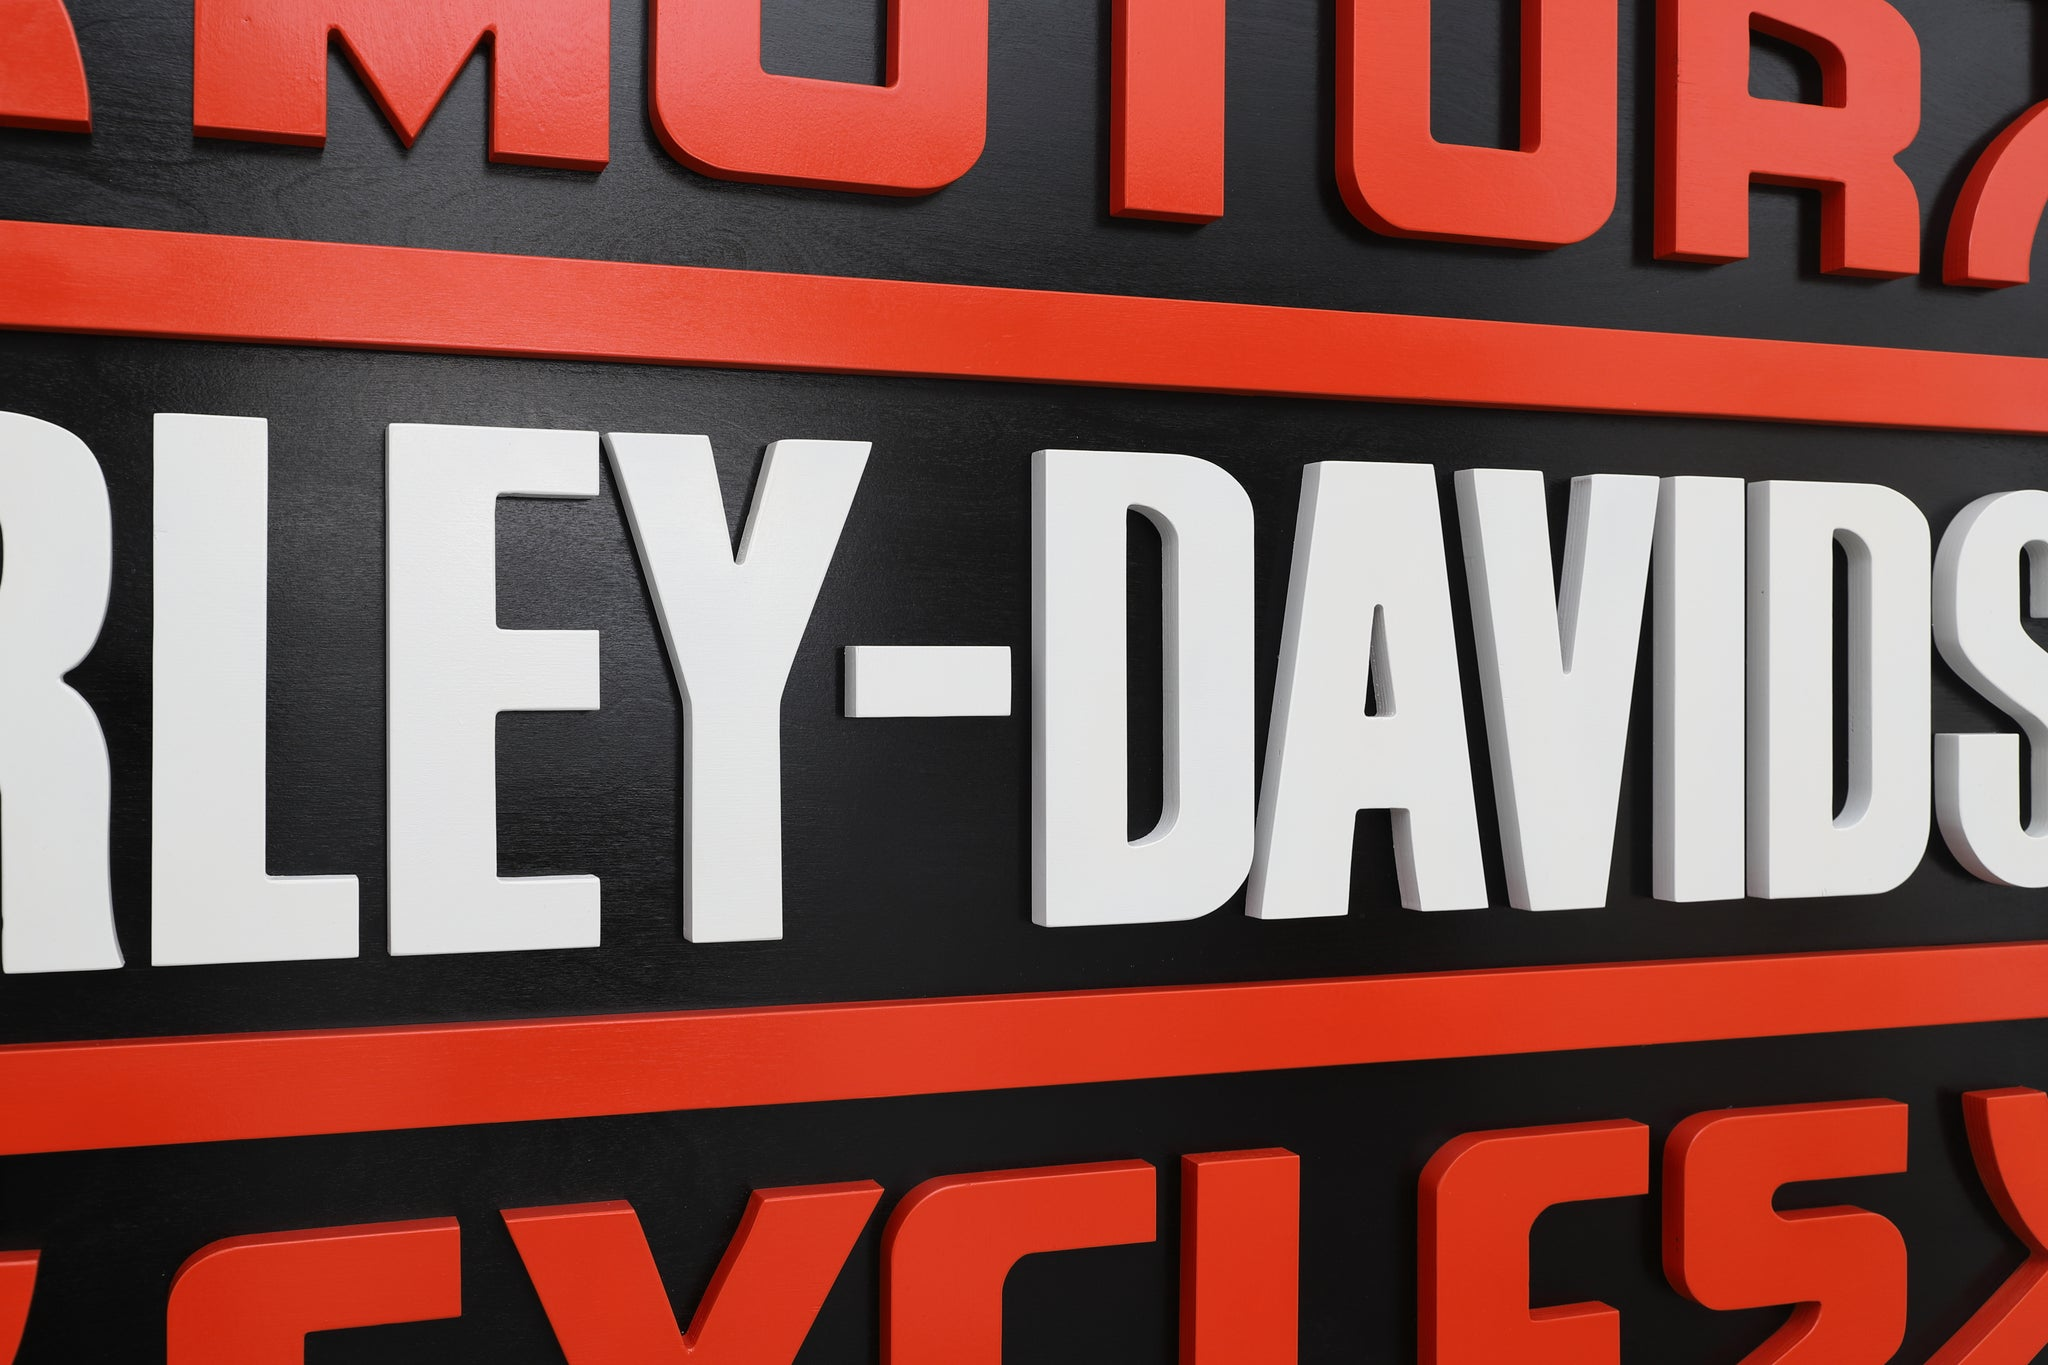 HARLEY-DAVIDSON wood sign